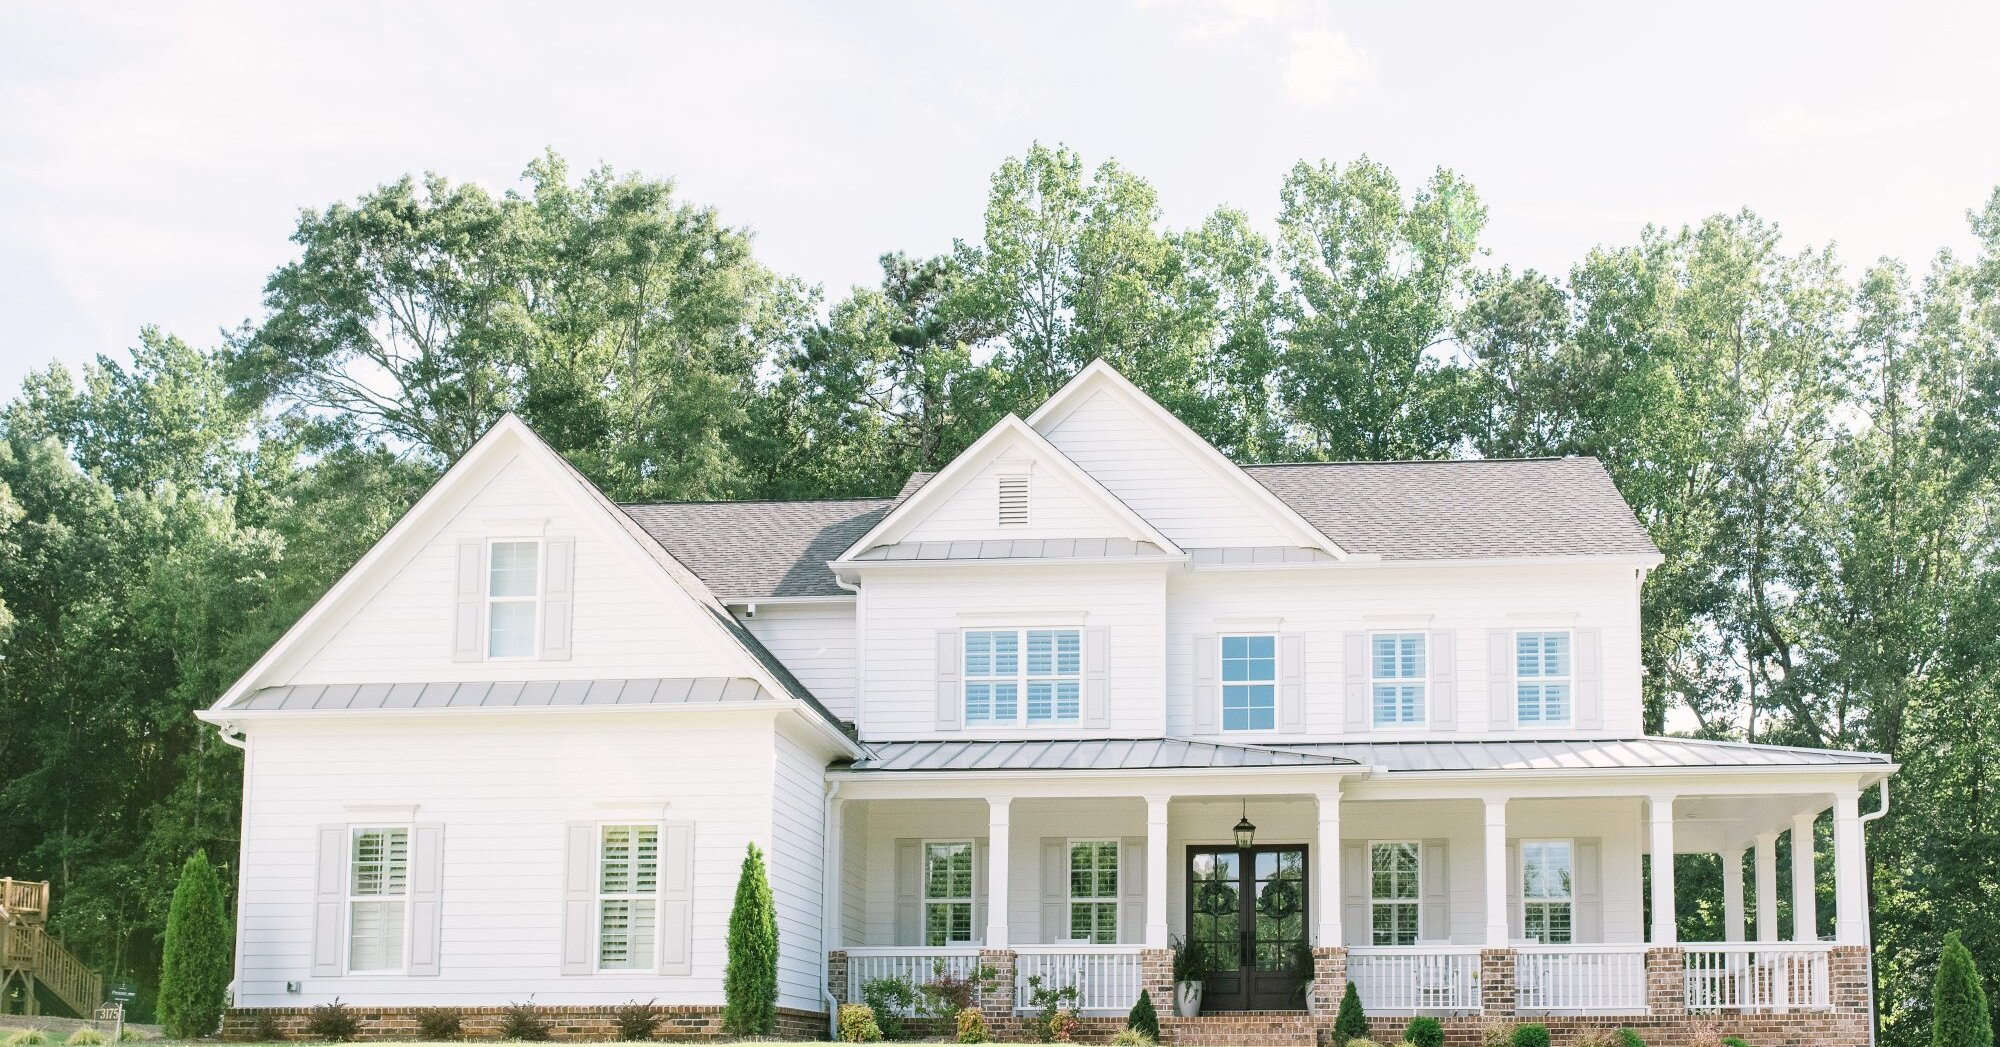 The Best Exterior Paint Colors For Farmhouses Southern Living,Wall Decals For Bedroom Quotes